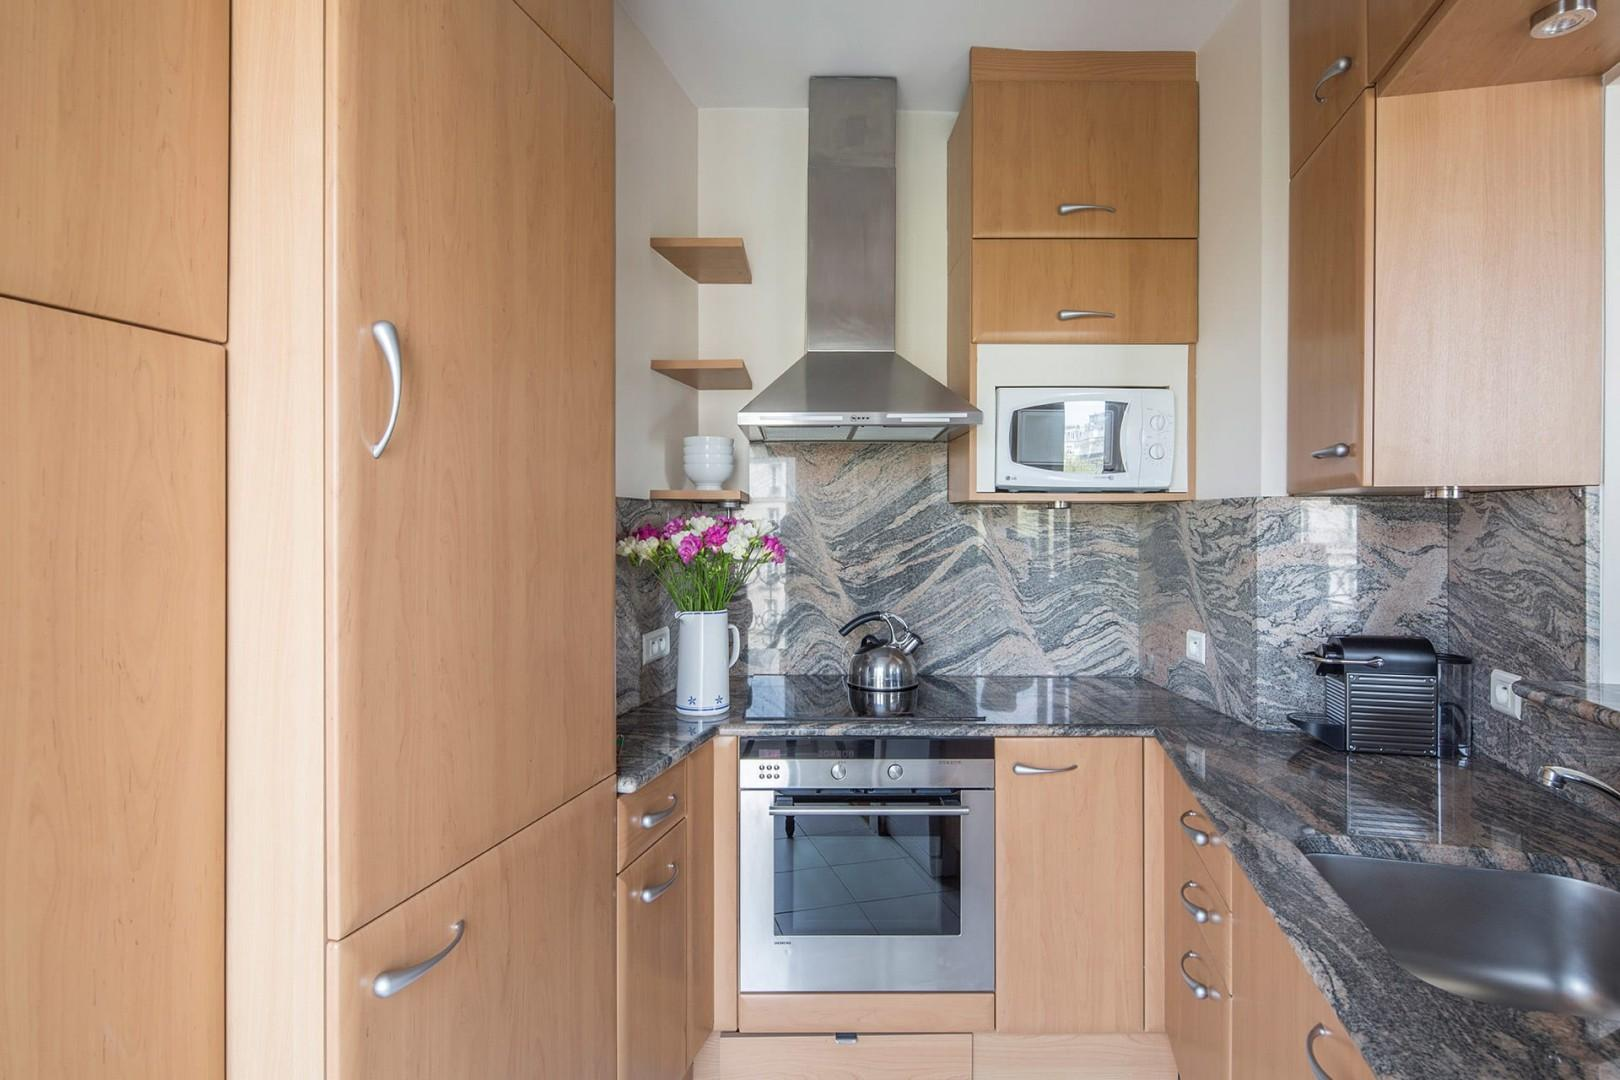 The modern, fully equipped kitchen comes with a dishwasher and Nespresso maker.